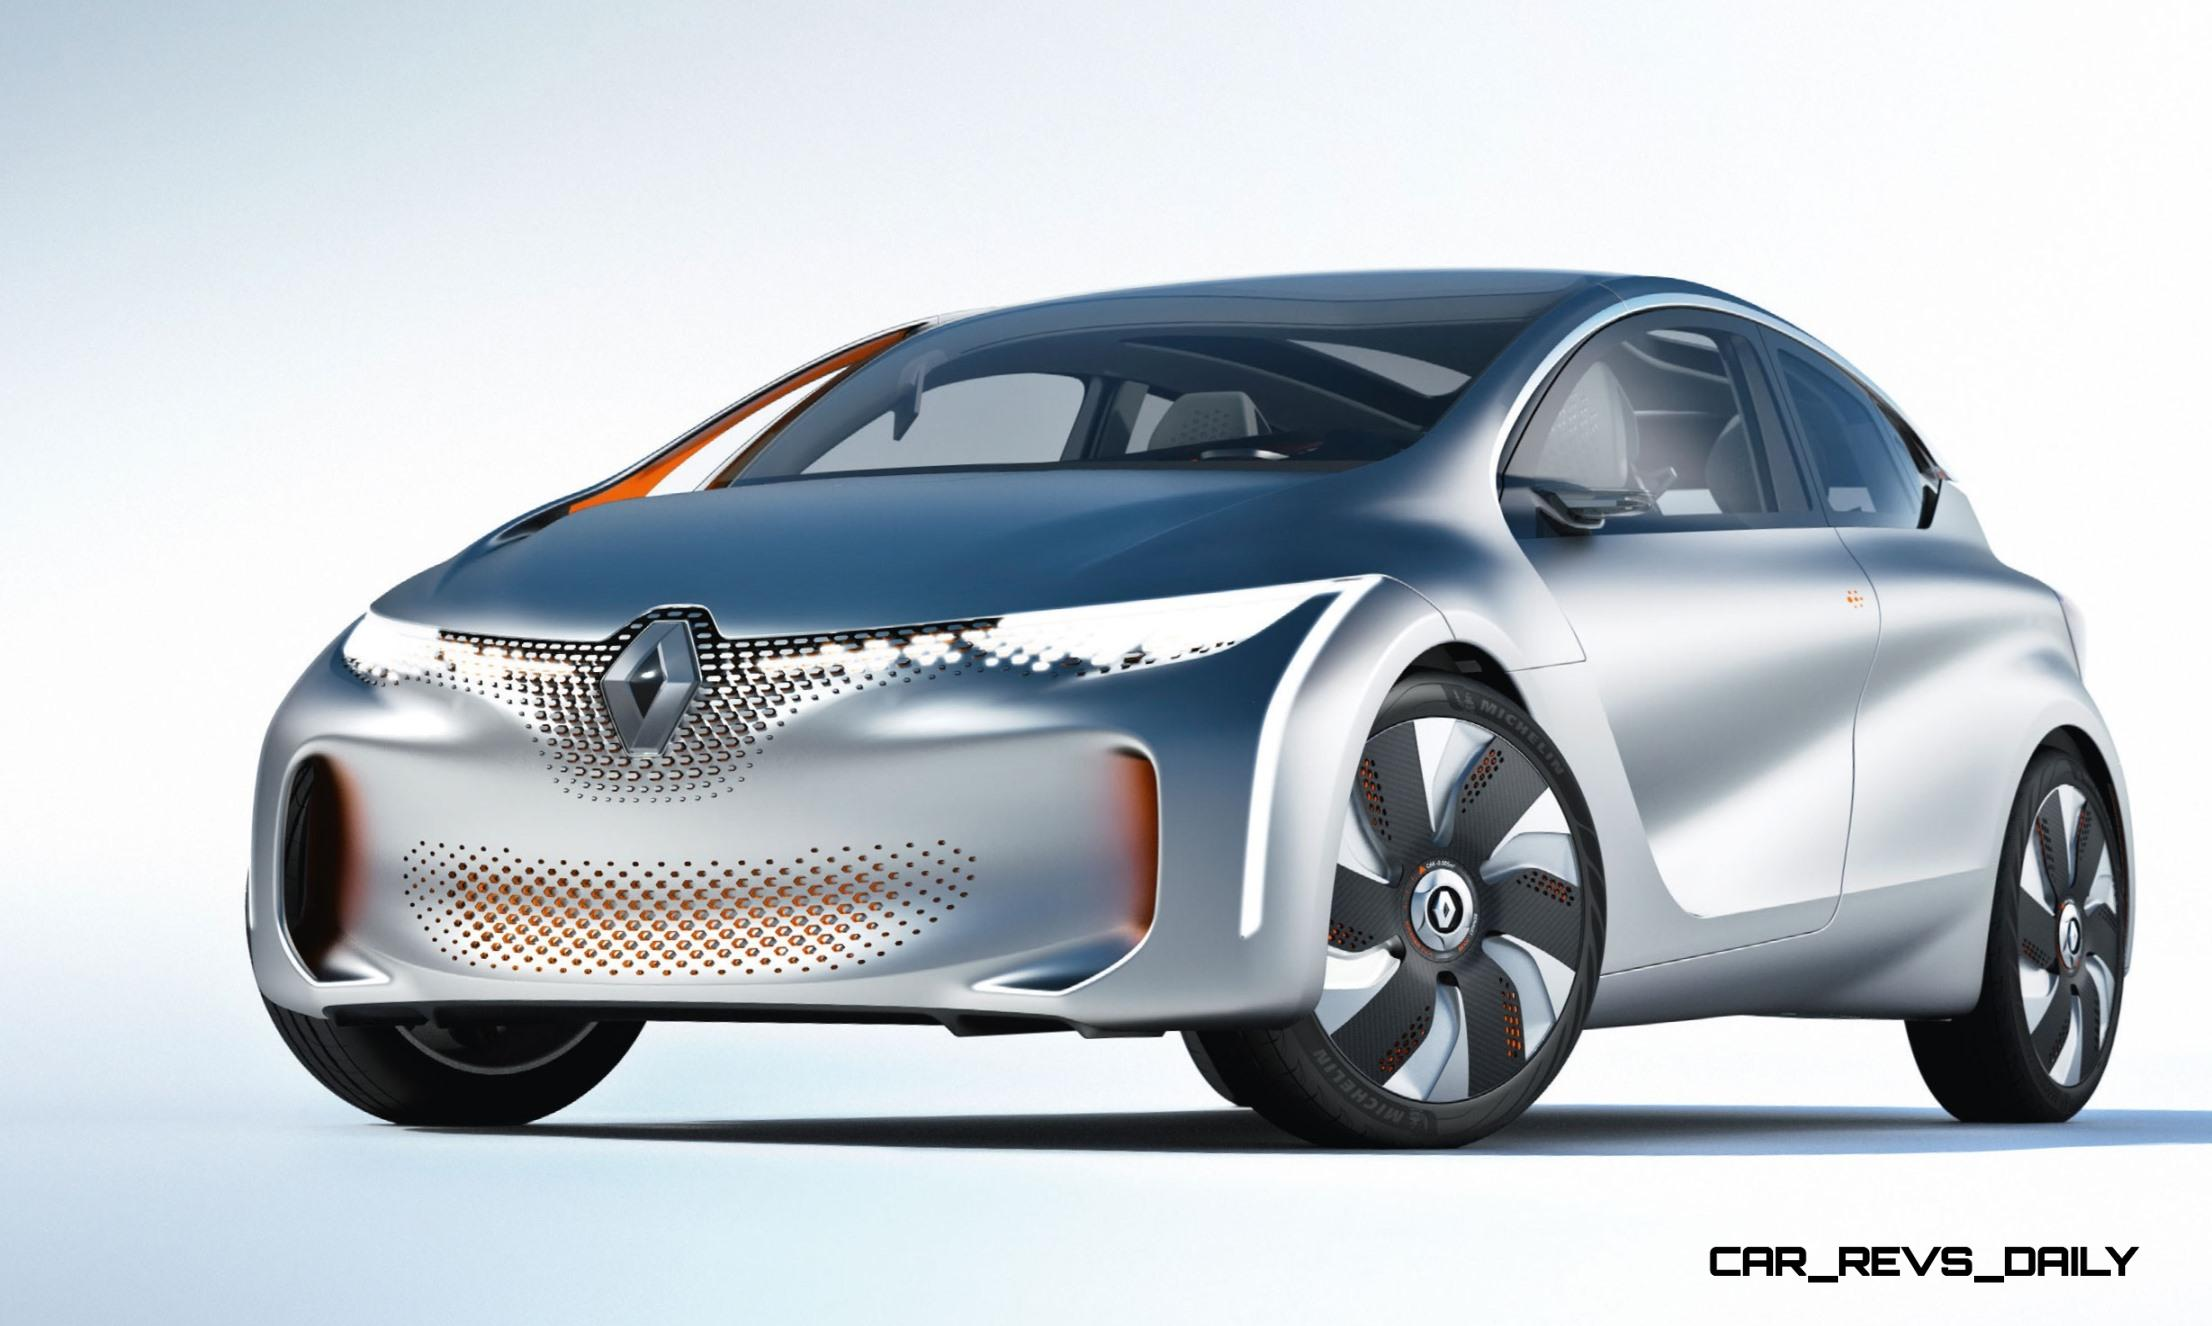 2014 Renault Eolab Concept Is Ultra-Aerodynamic Innovation